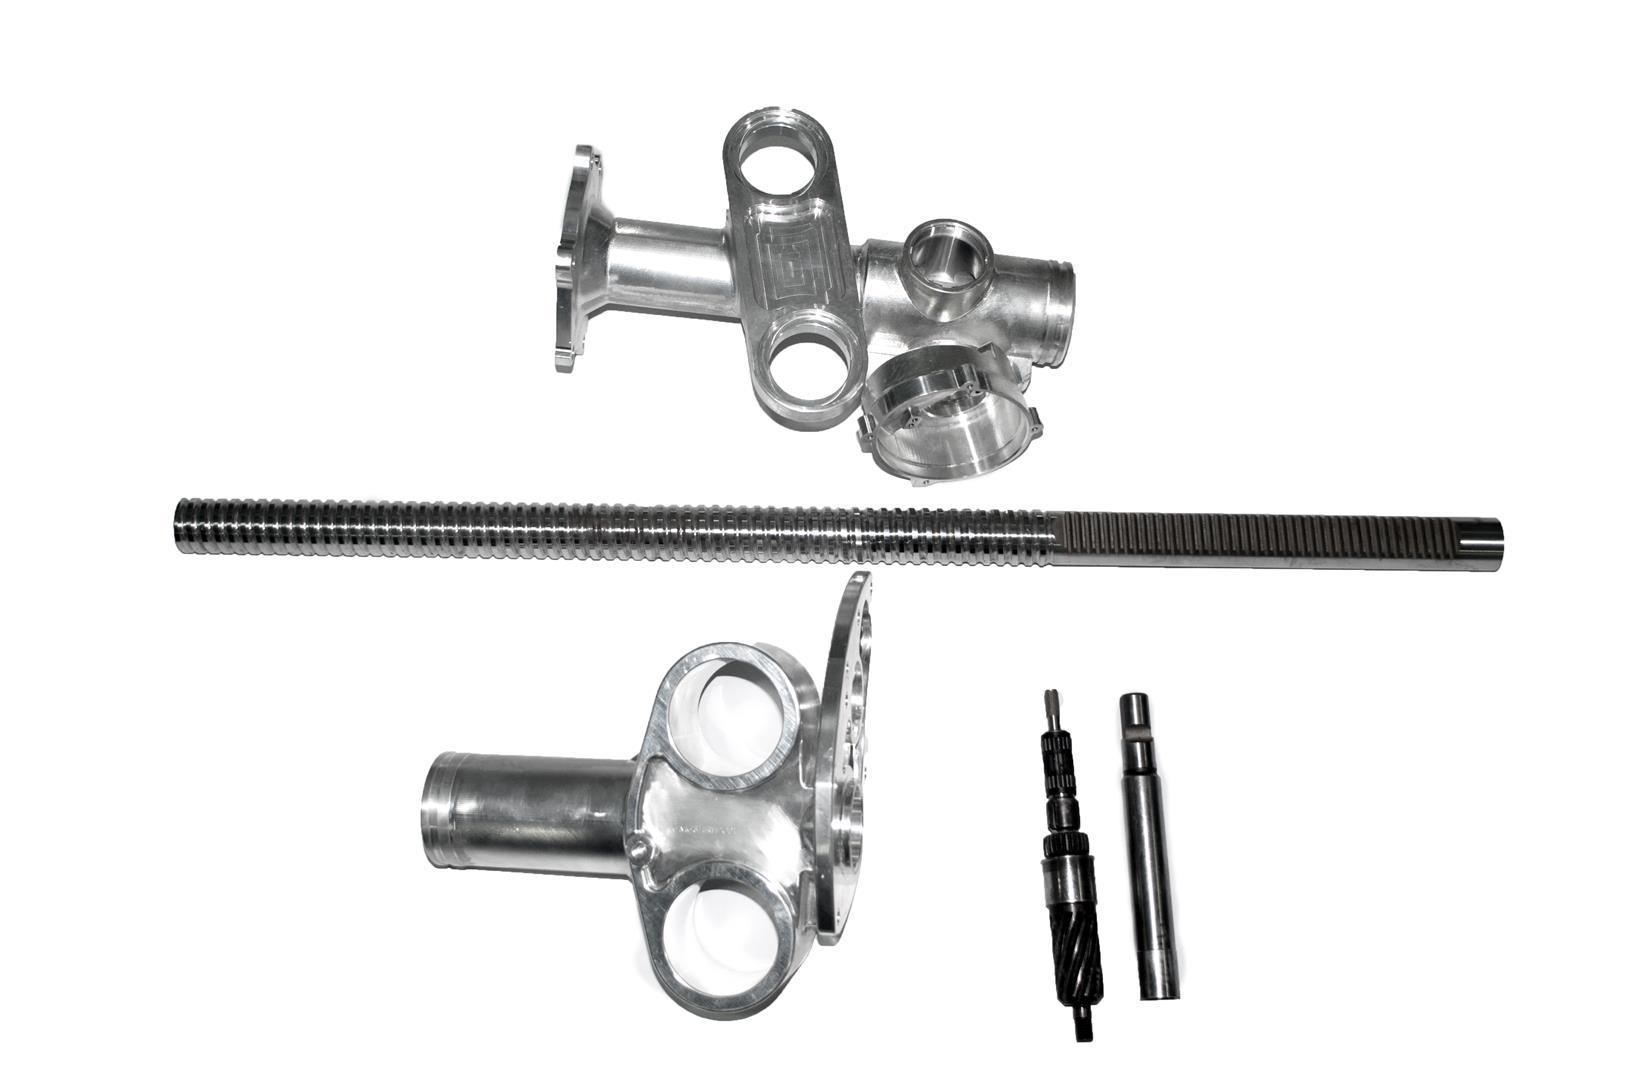 Silverado Right Hand Drive Steering Rack